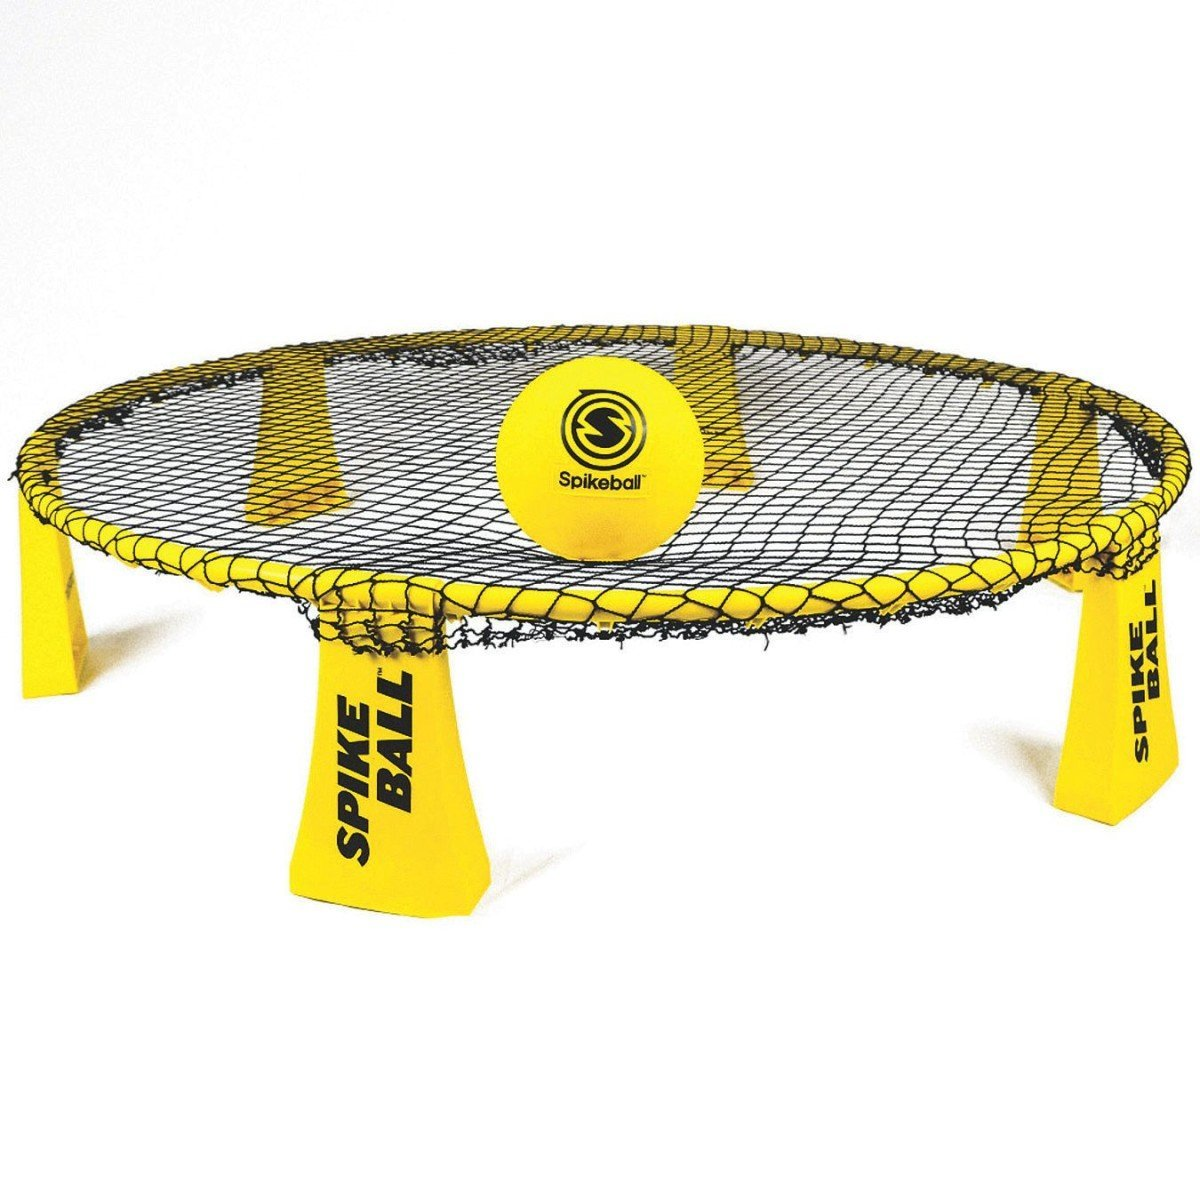 Spikeball Rookie Kit - 50% Larger Net and Ball - Played Outdoors, Indoors, Yard, Lawn, Beach - Designed for Kids 12 and Under B07D7WVM59